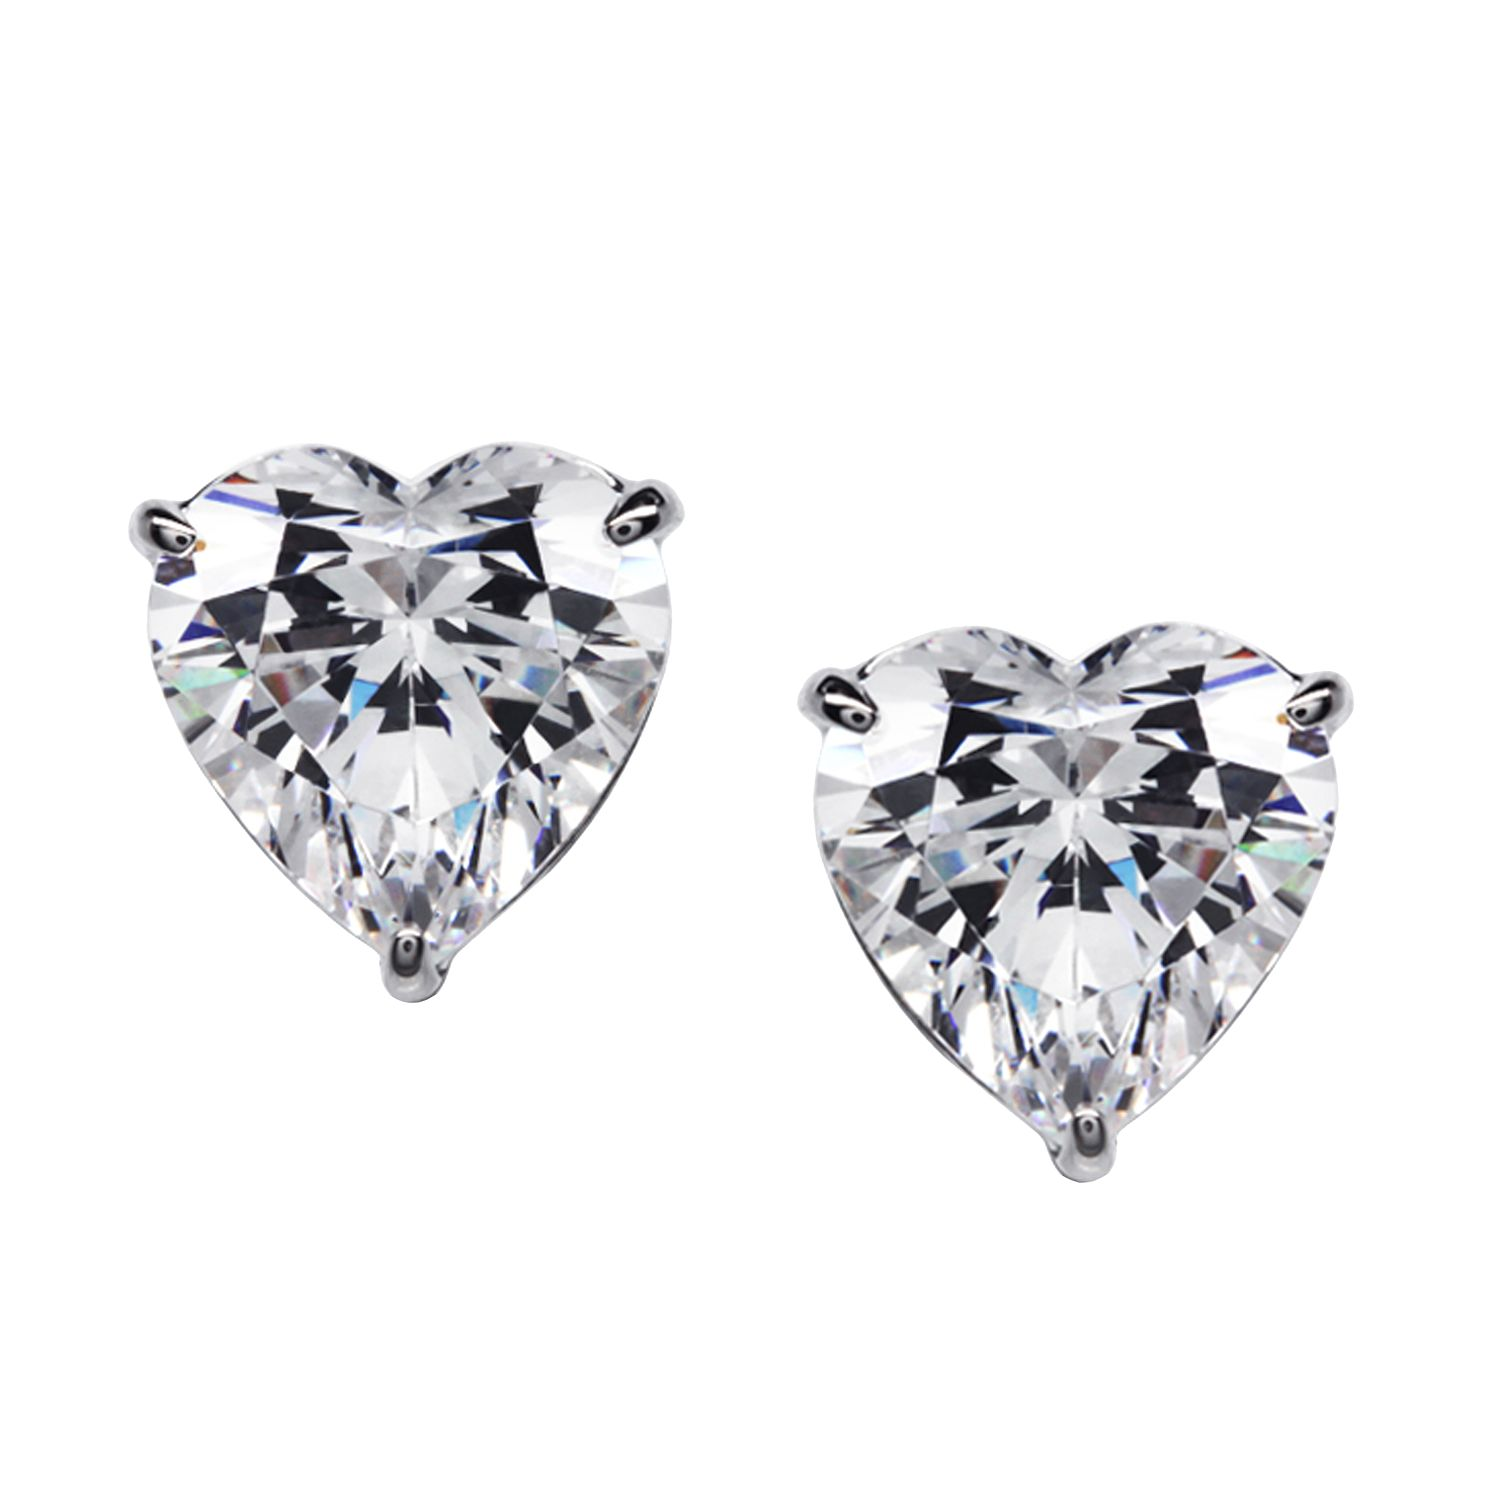 CARAT* LONDON 9ct White Gold Heart Stud Earrings - Product number 2840812